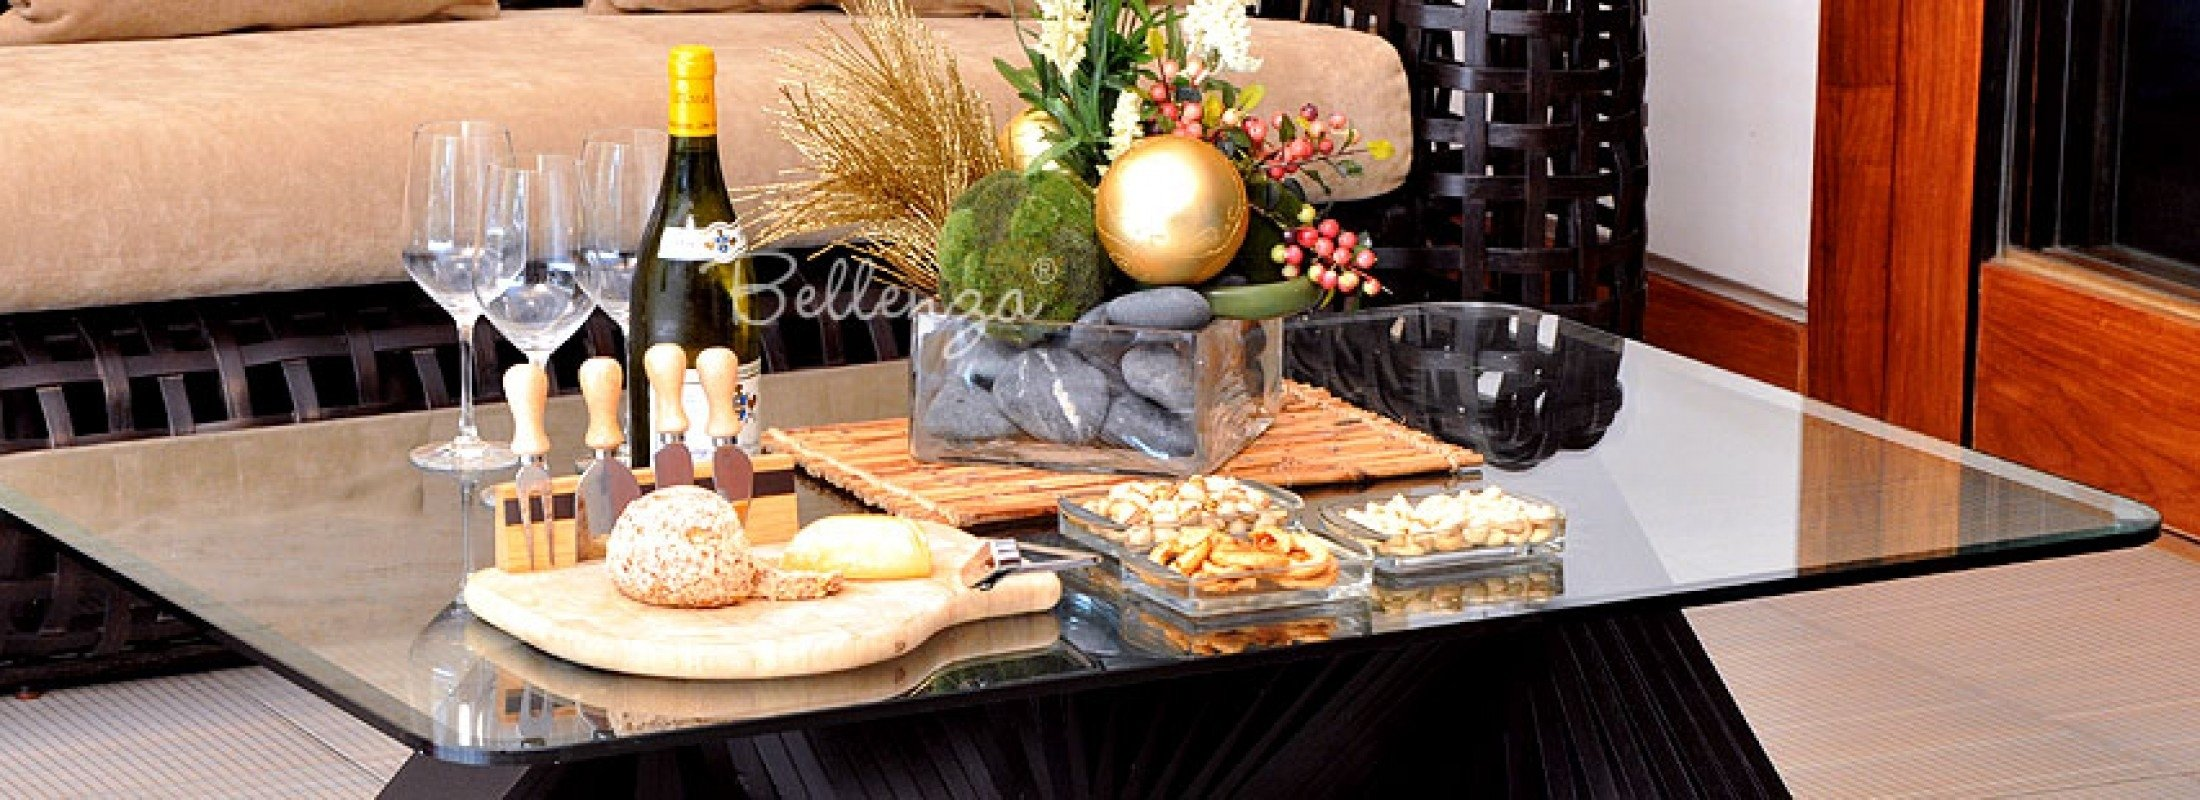 10 Attractive Wine And Cheese Party Ideas wine and cheese holiday party ideas that are easy 2021